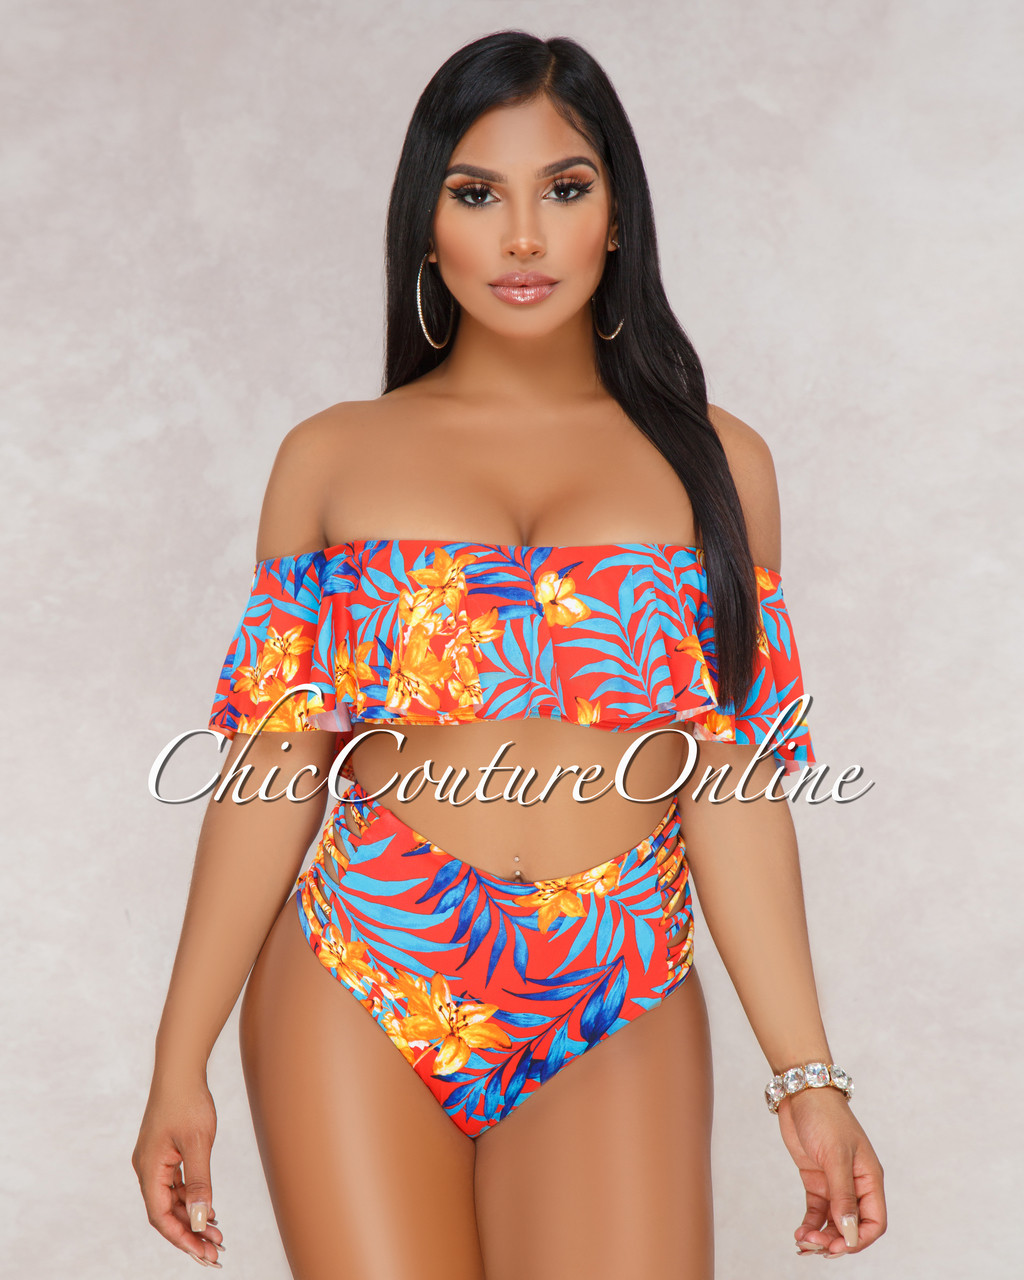 e271adc232da7 ... Ruffle Top and Strappy High Waist Two Piece Swimsuit. Price   50.00.  Image 1